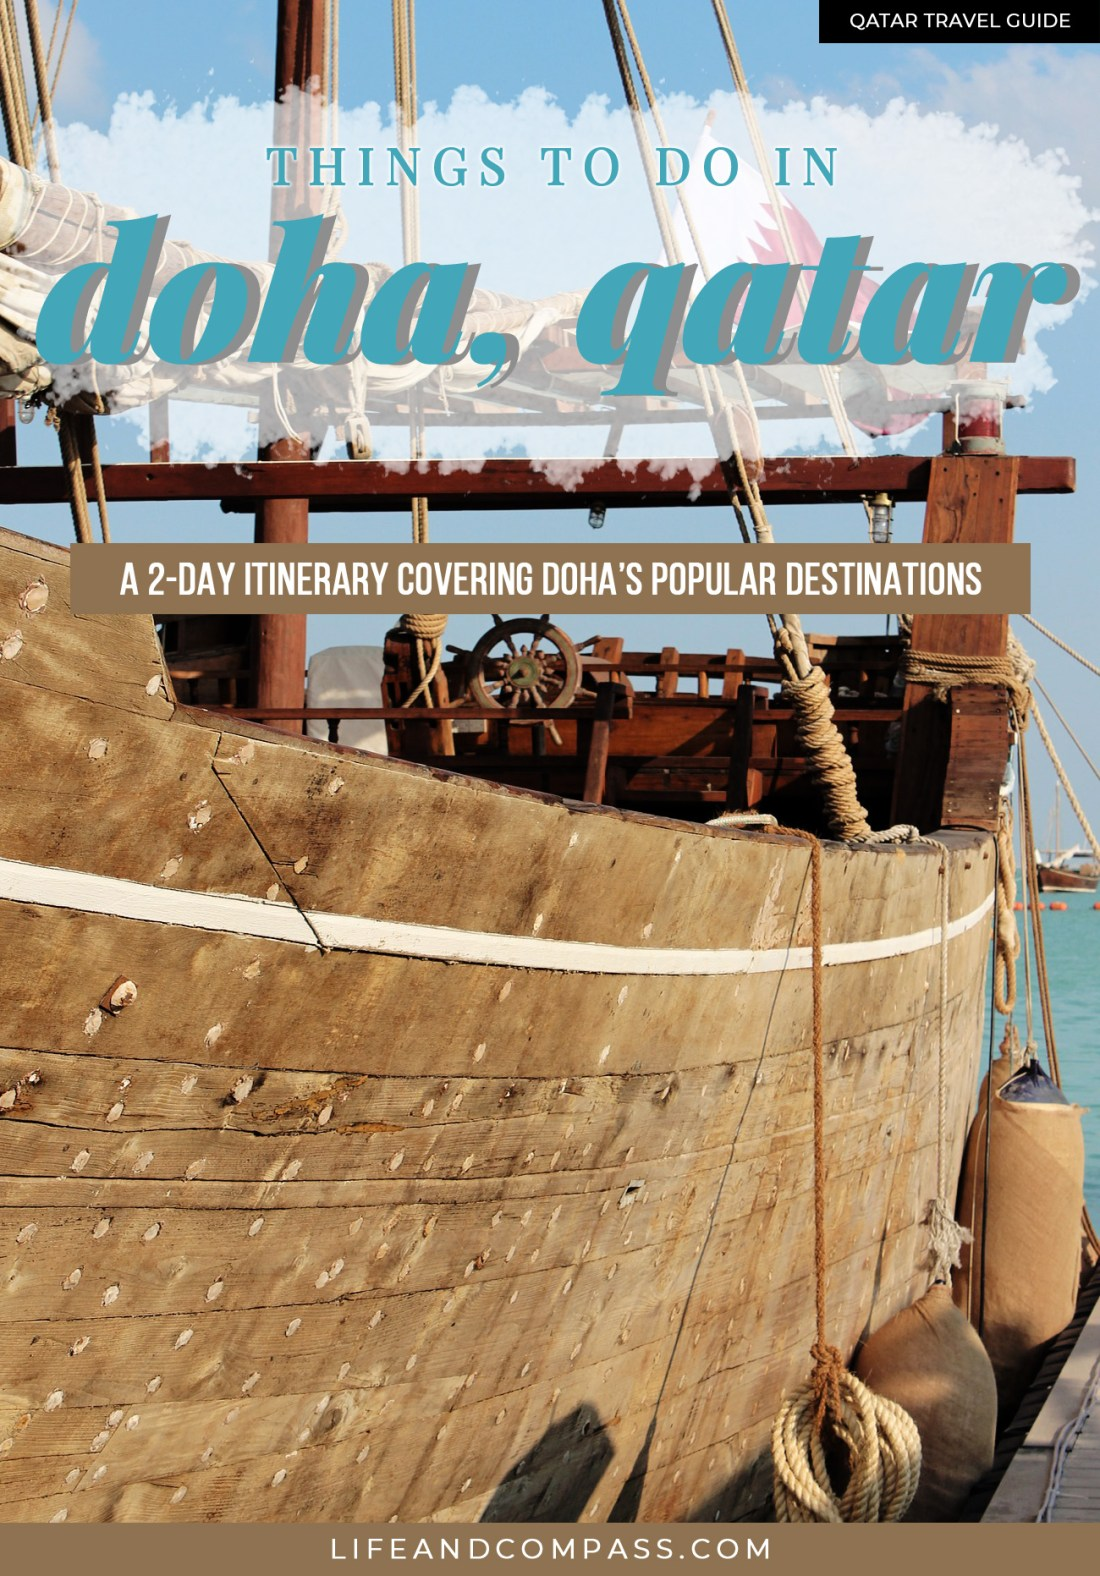 Doha is not usually the first destination most would think of. Being selected for the DohaGoals in 2012, I was excited to make Doha my first global stop. Here are a few suggested things to do in Doha when you are a bit tight on timing - 2 days and you still can see and do a lot!